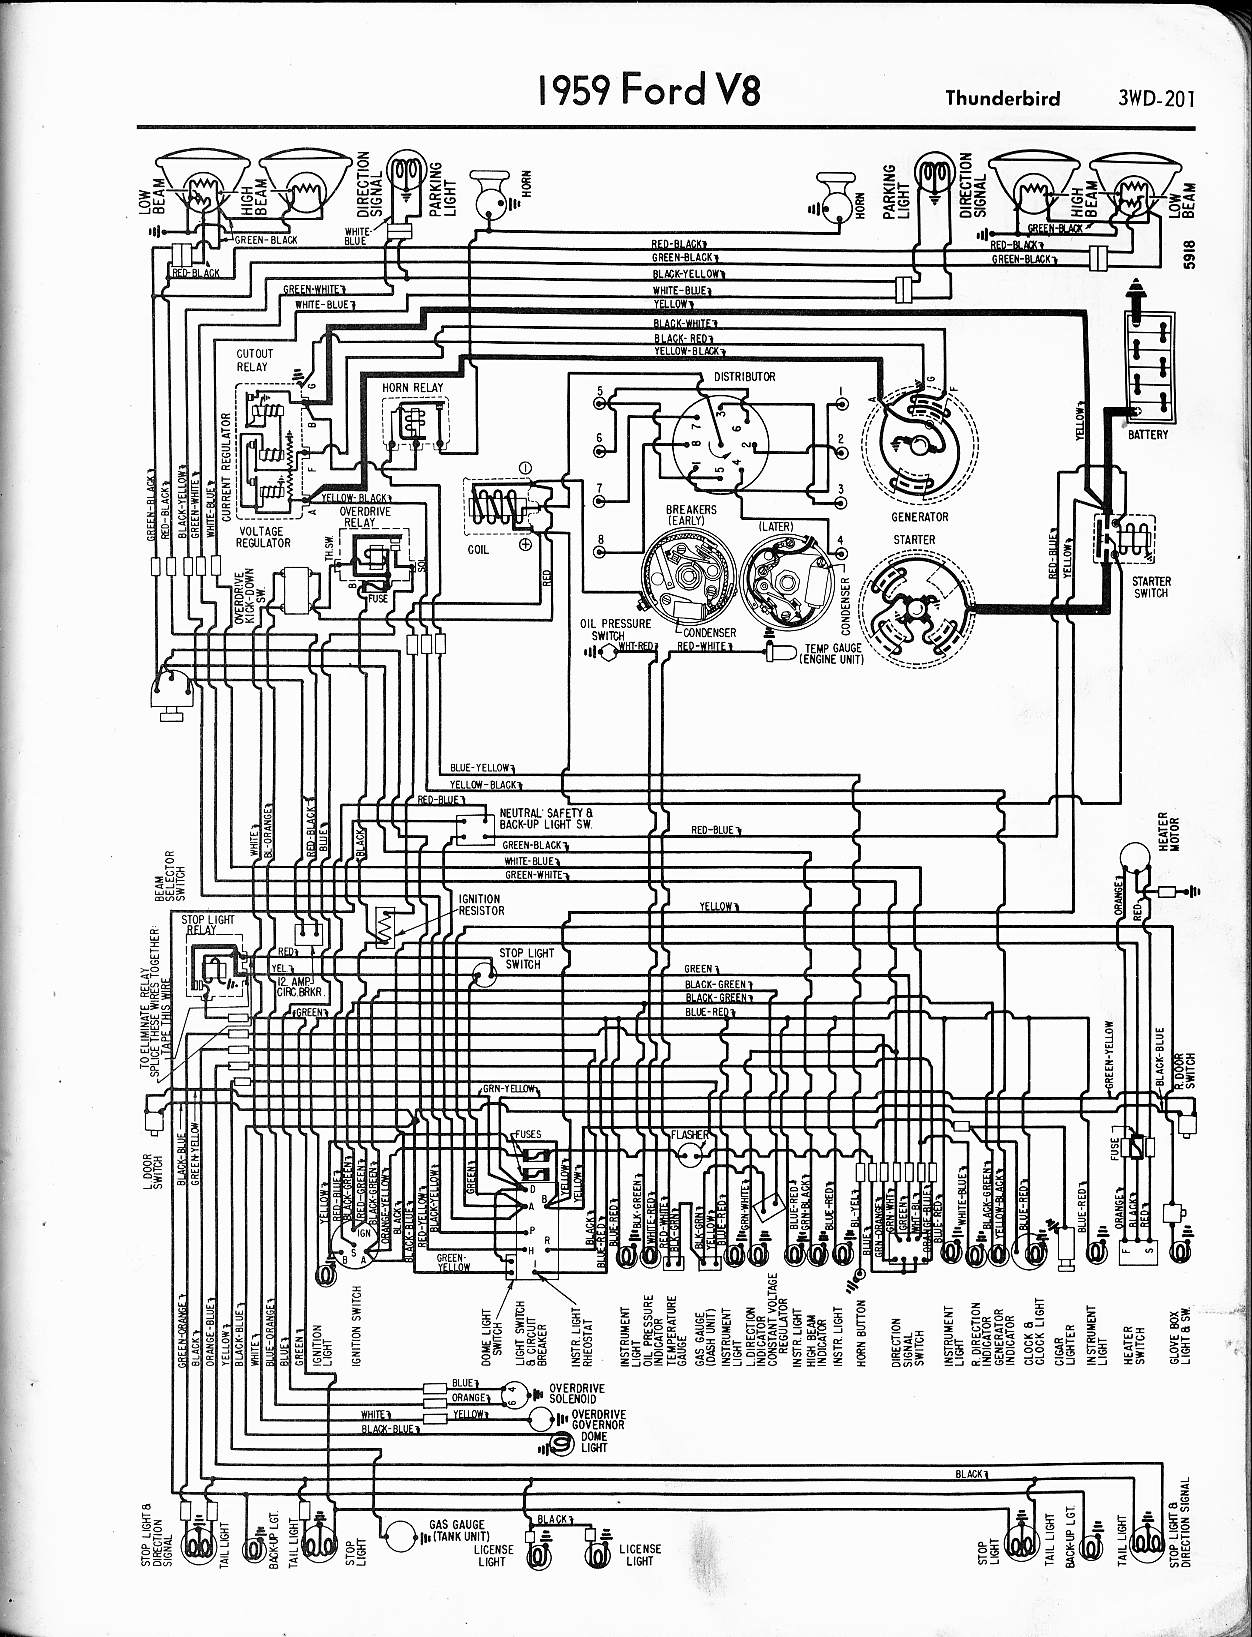 MWire5765 201 57 65 ford wiring diagrams ford wiring schematics at eliteediting.co